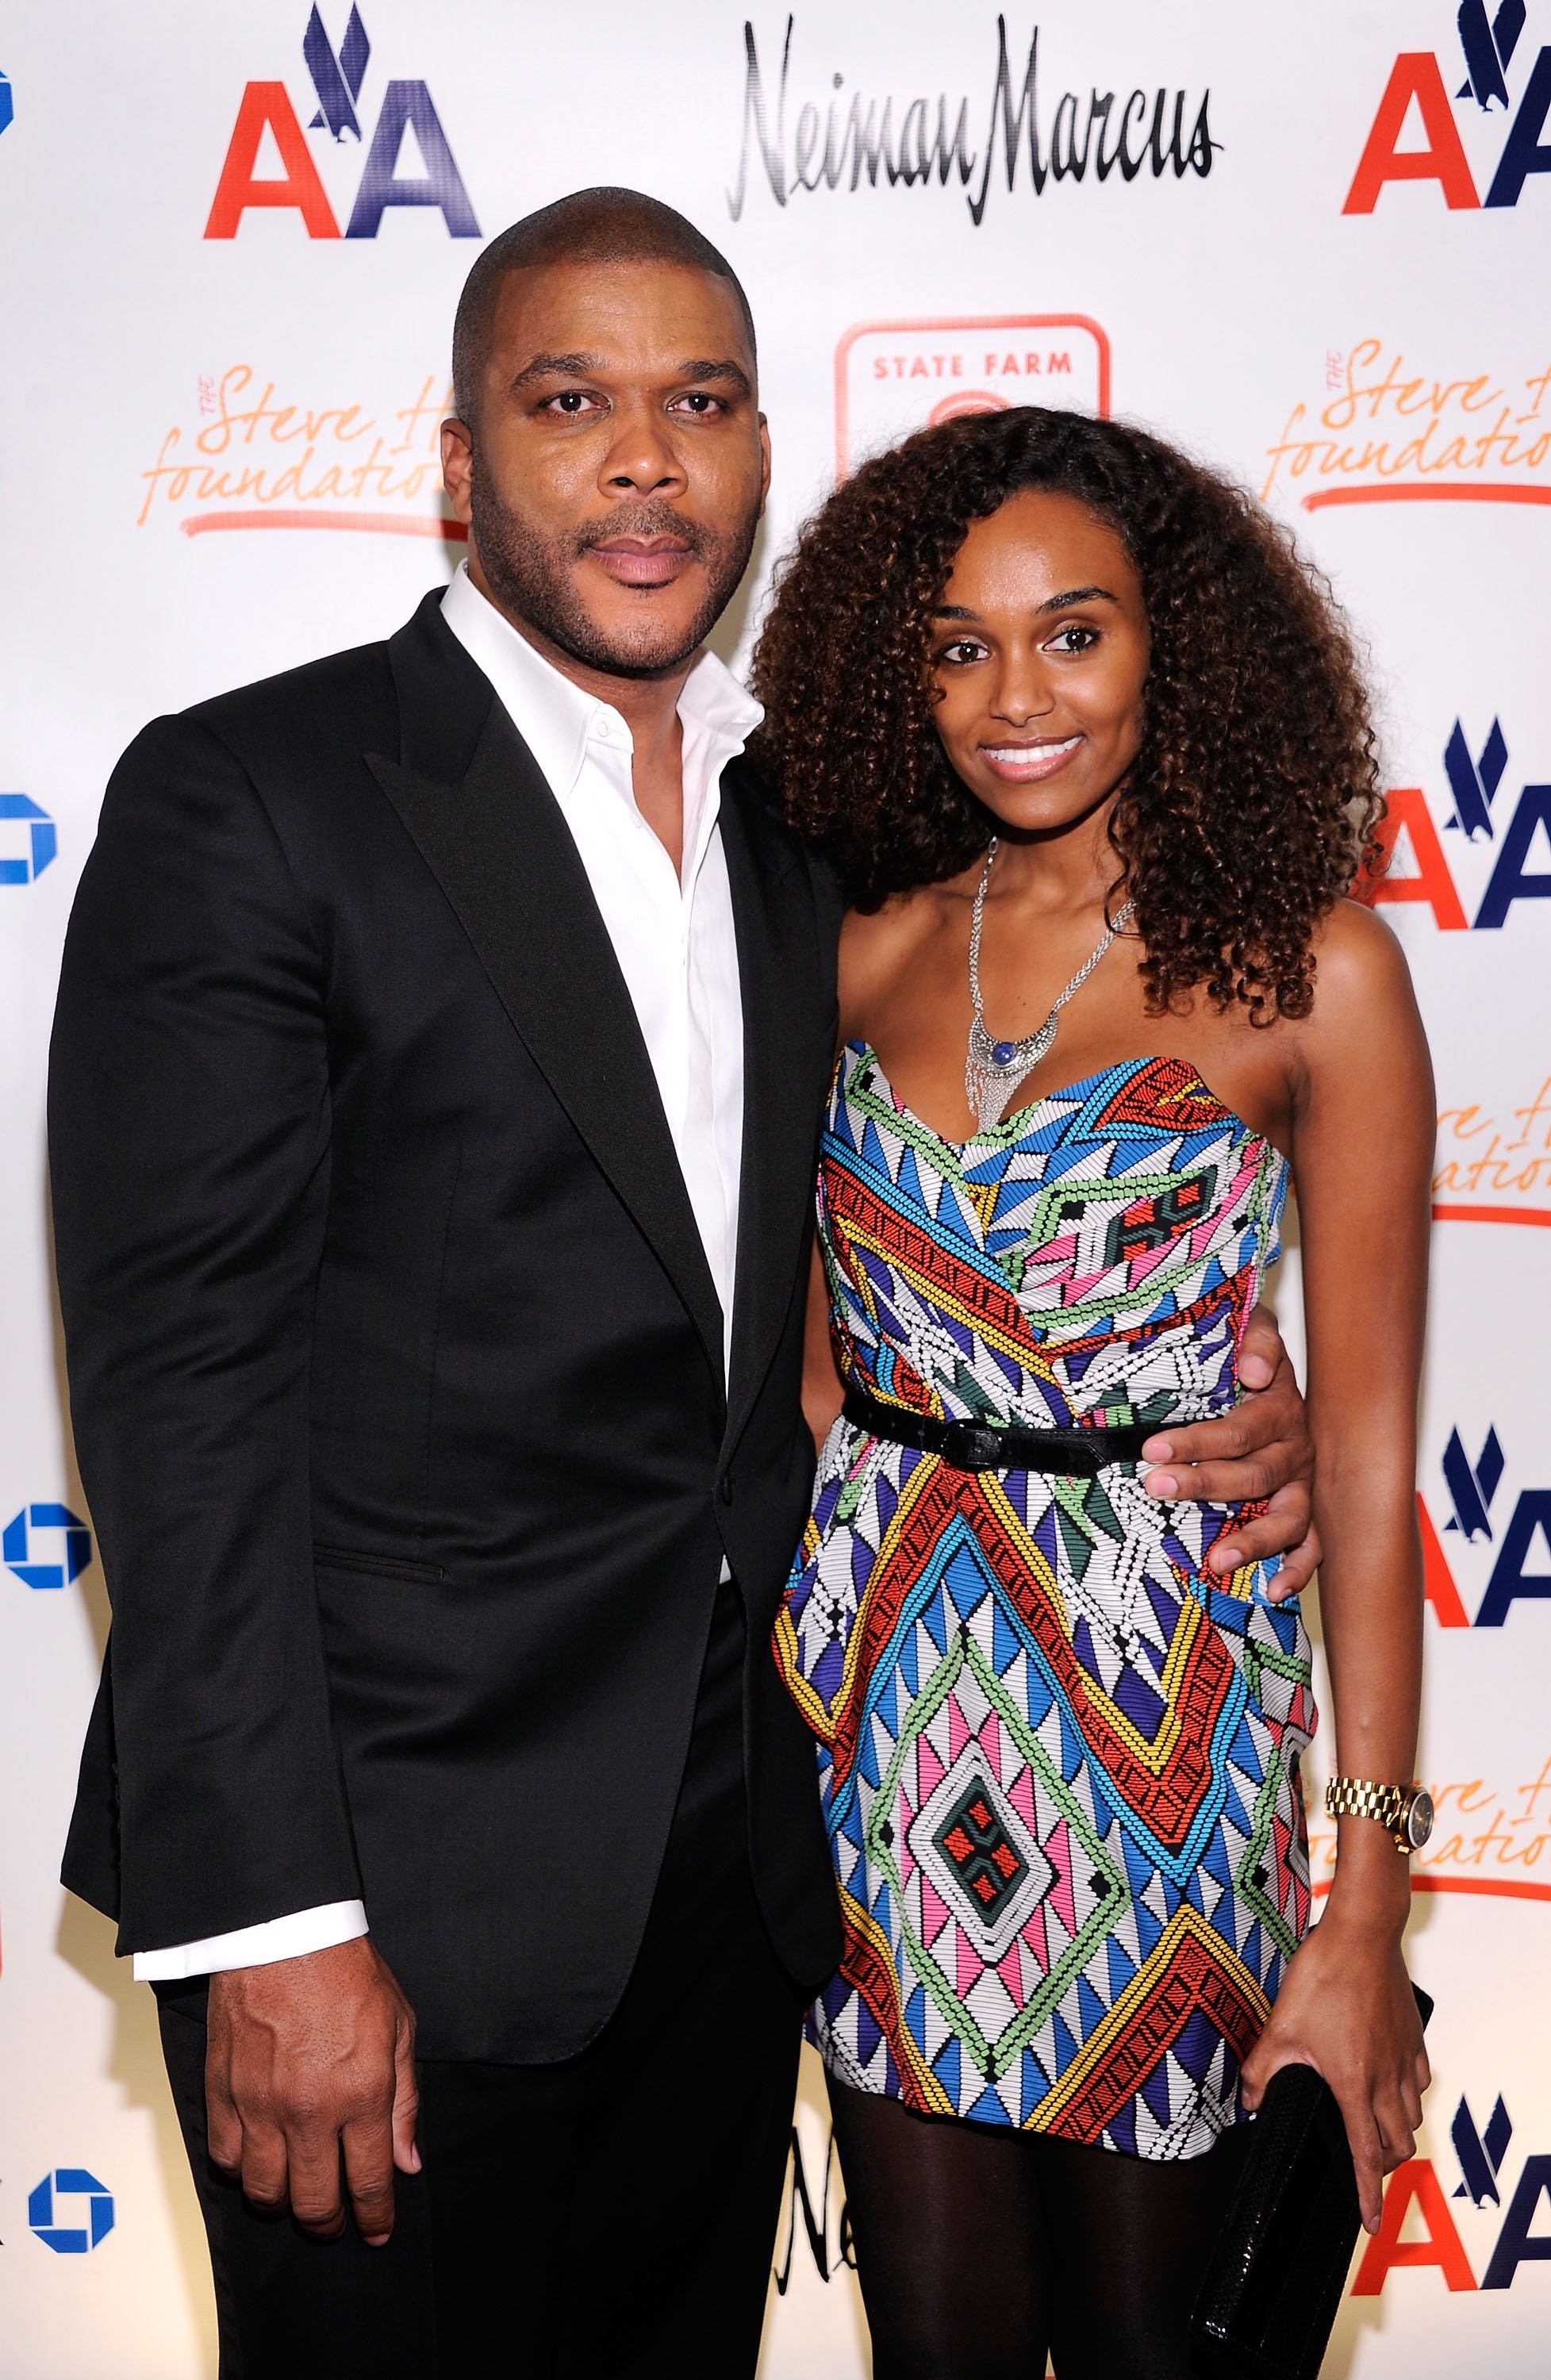 Tyler Perry and Gelila Bekele at the 2nd annual Steve Harvey Foundation Gala, 2011. | Photo: GettyImages